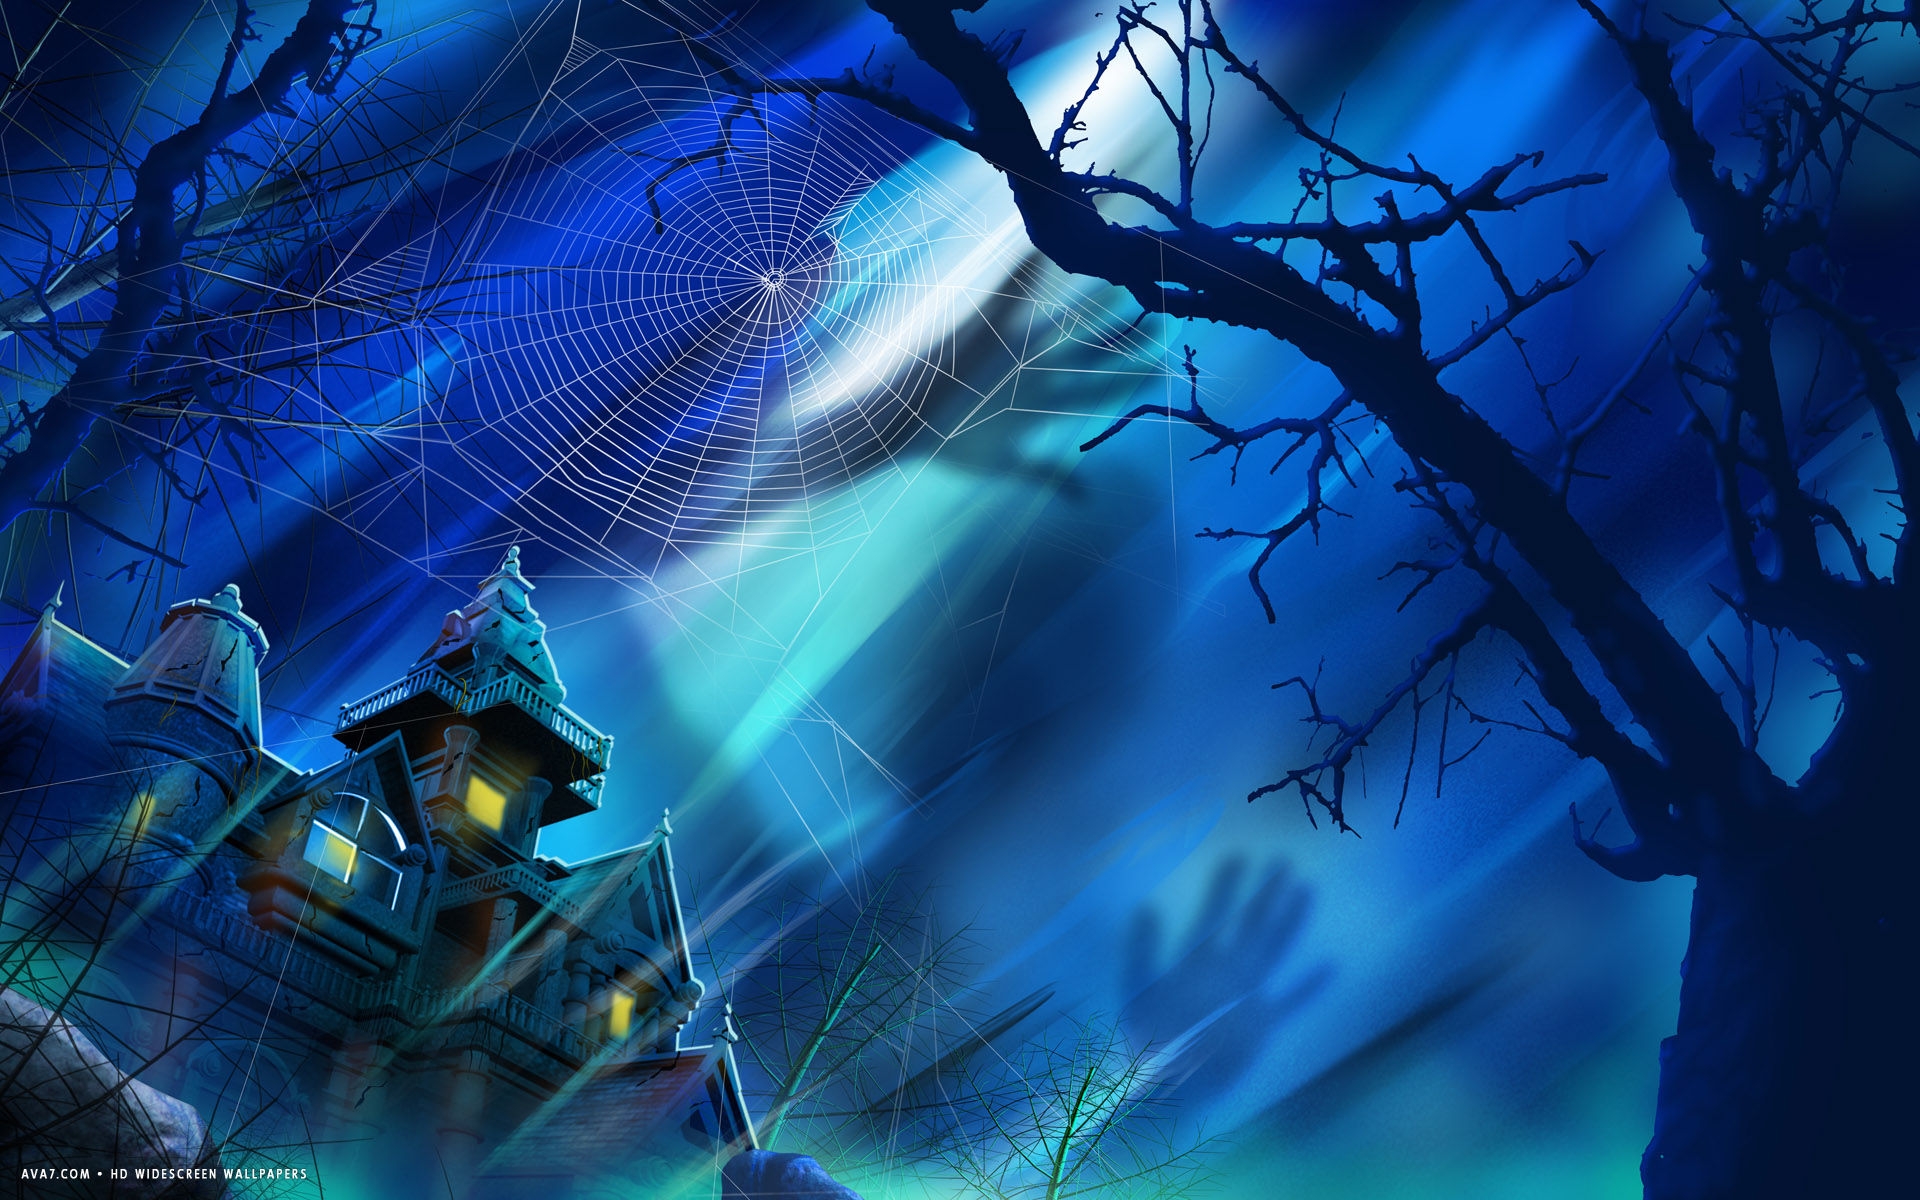 Great Wallpaper Halloween Spider - halloween-house-spider-web-tree-shadow-moonlight-holiday  Pictures_38607.jpg